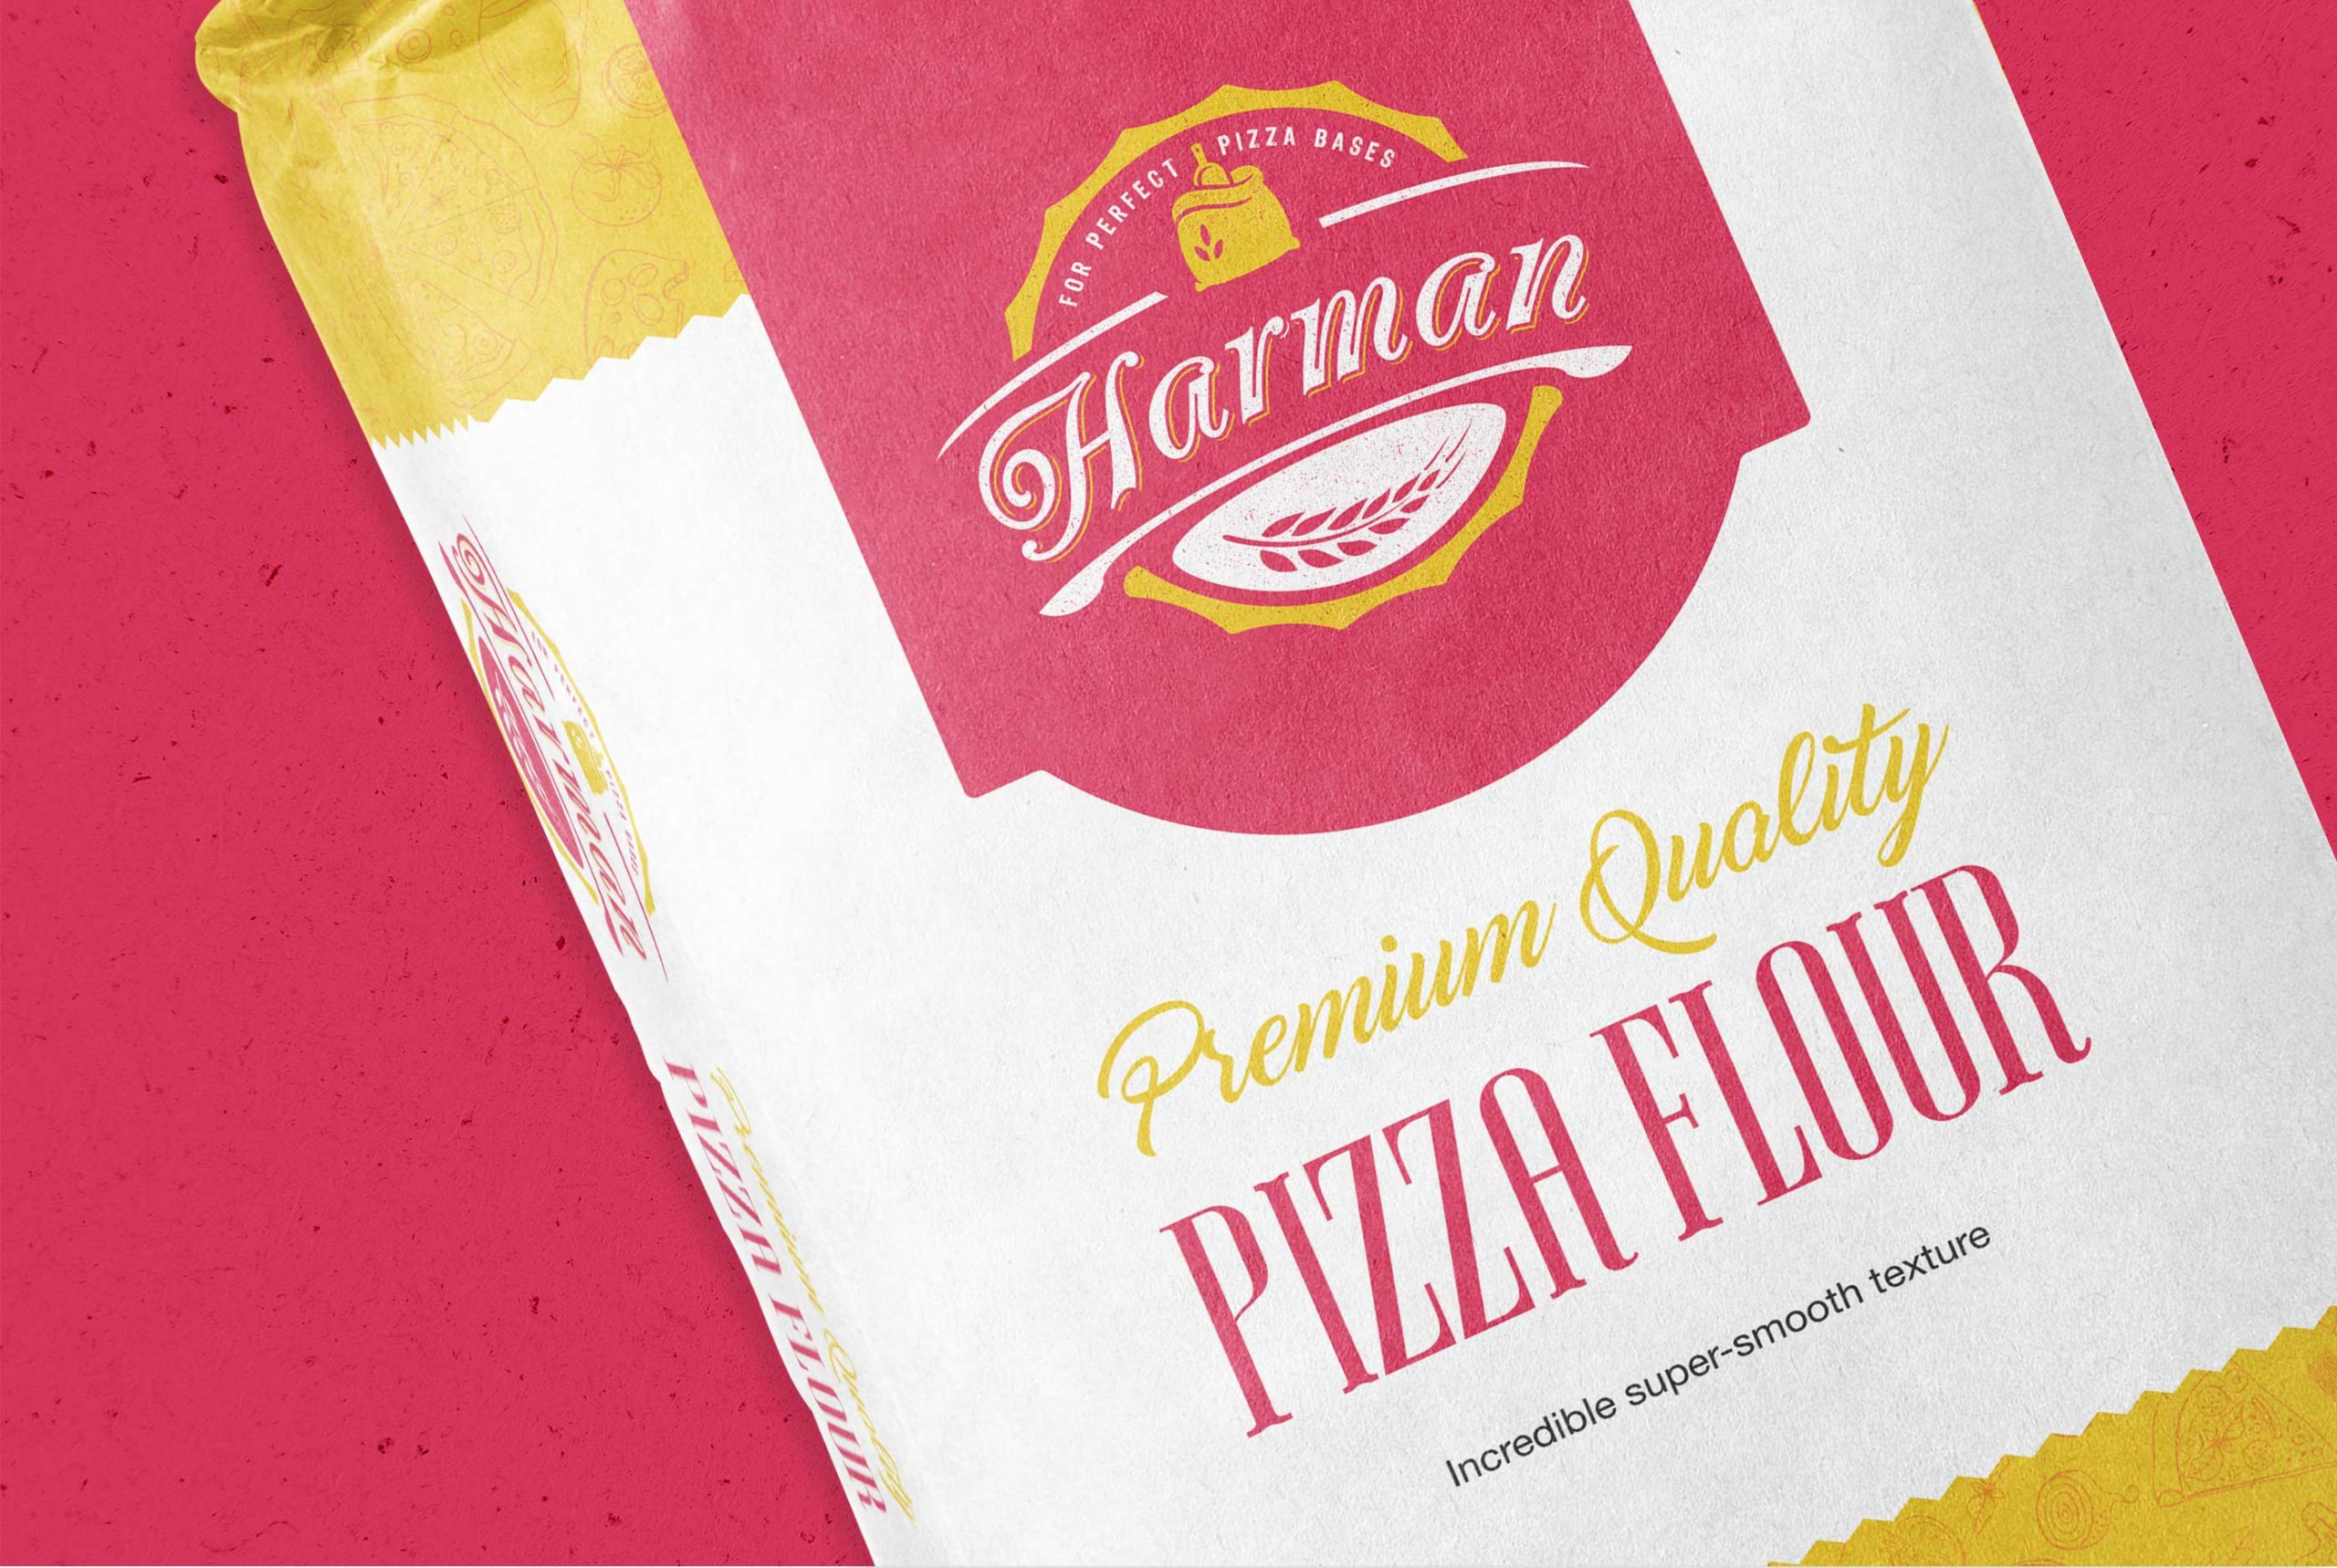 Detailed view of Harman Premium Quality Pizza Flour packaging, designed by BONB Creative & Design